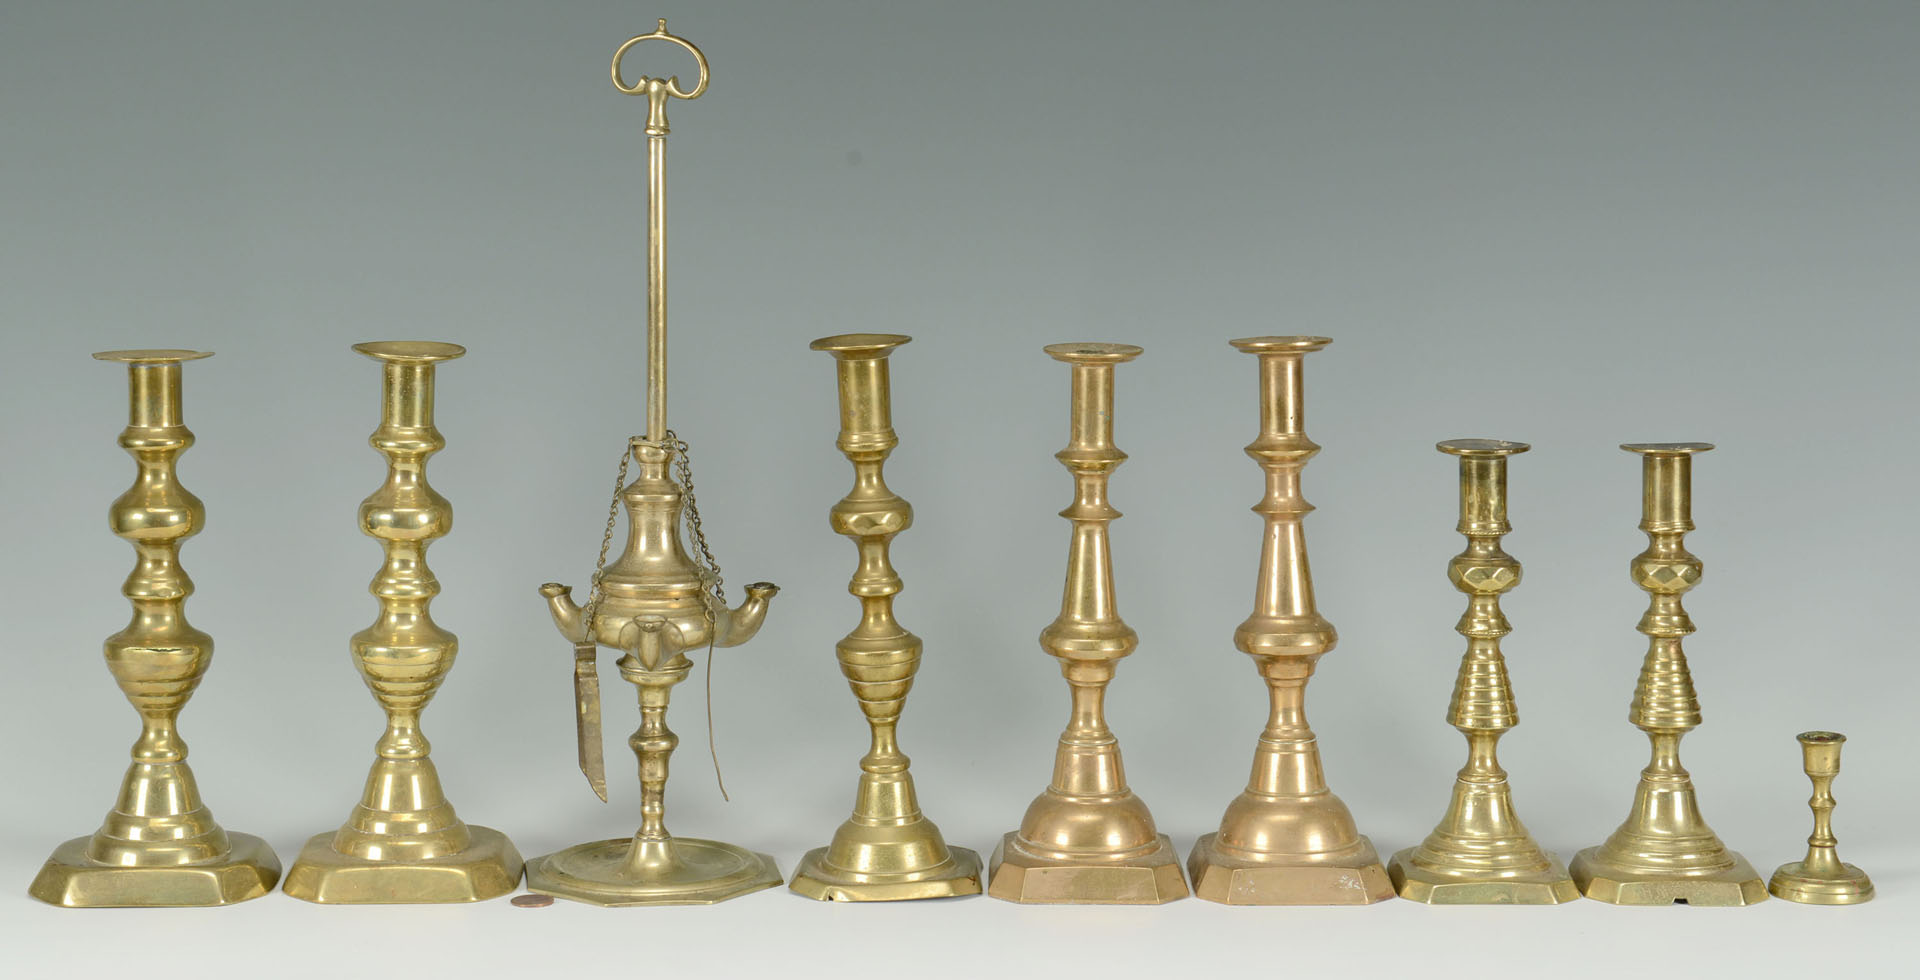 Lot 756: Grouping of Brass Candlesticks, 19th c.